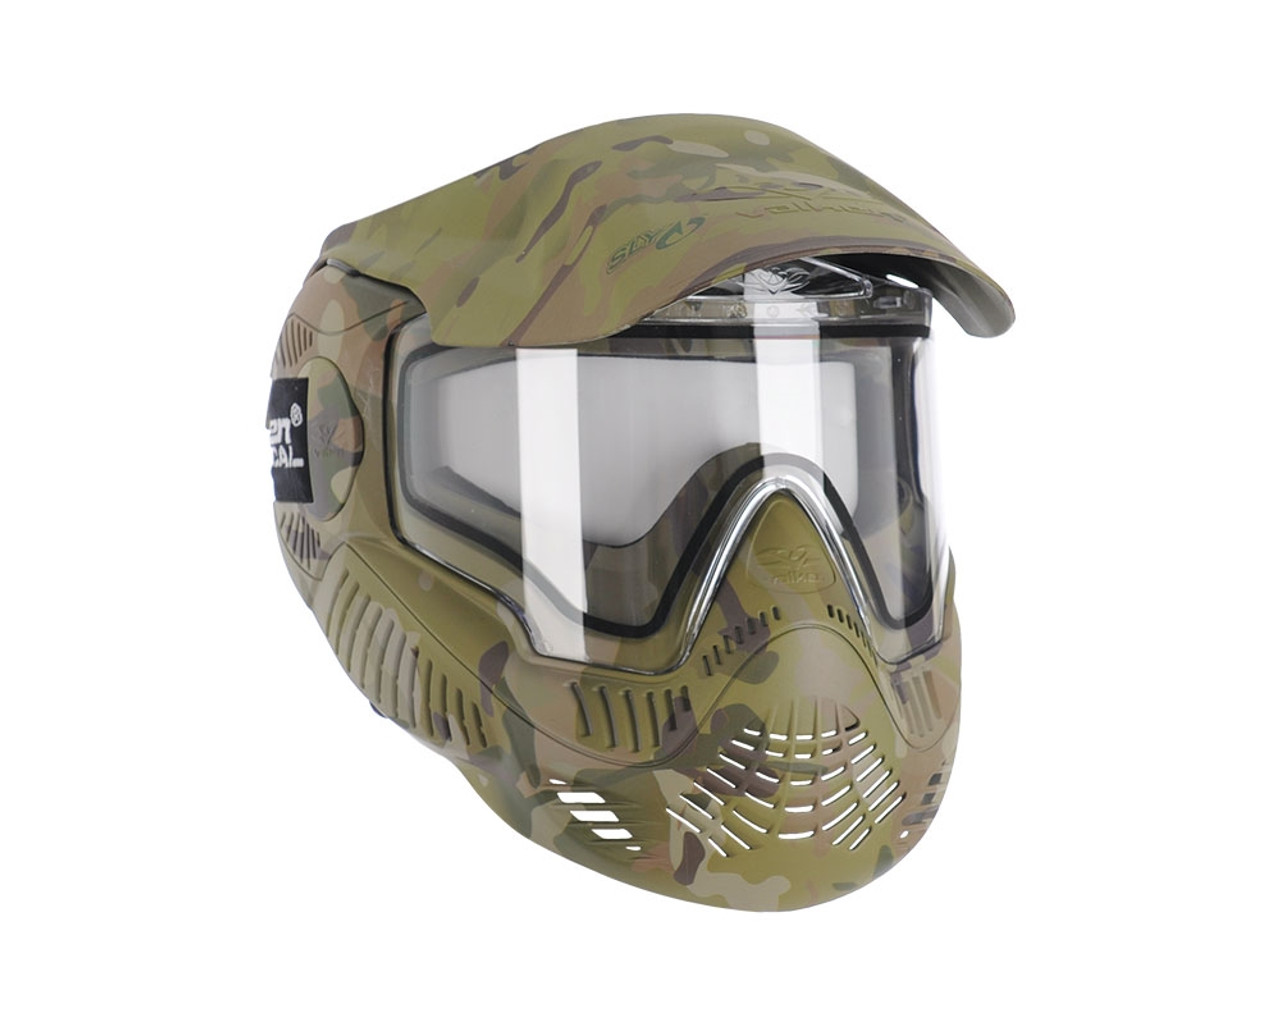 Valken Sly Annex MI-7 Black with thermal anti-fog clear Lens Goggle Mask NEW